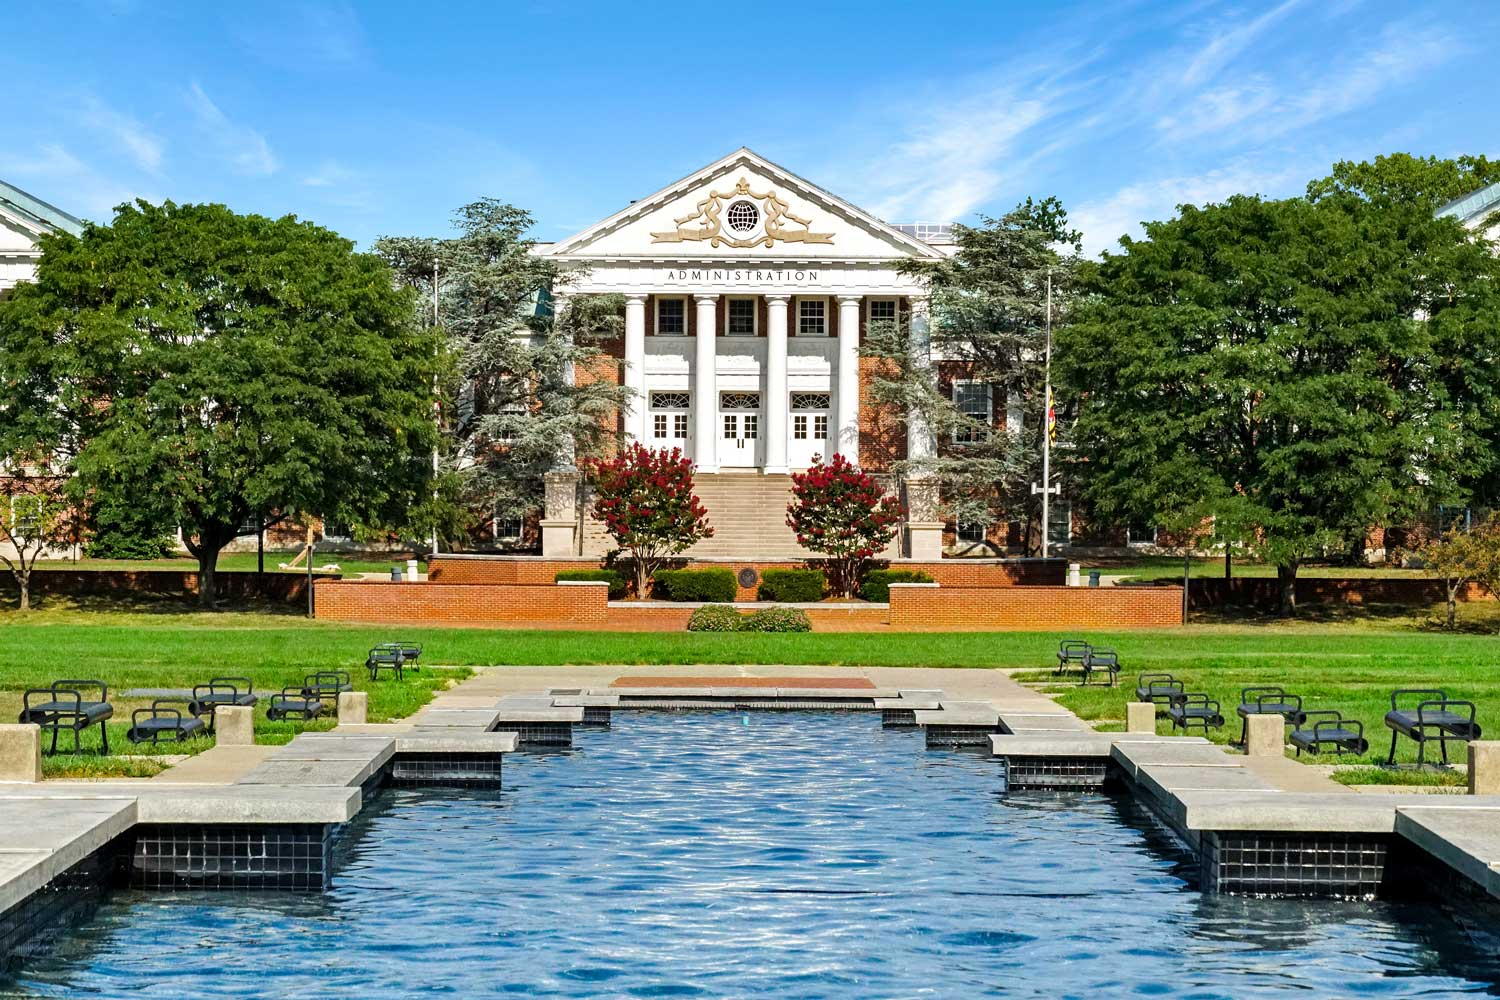 Easy commute to the University of Maryland, College Park